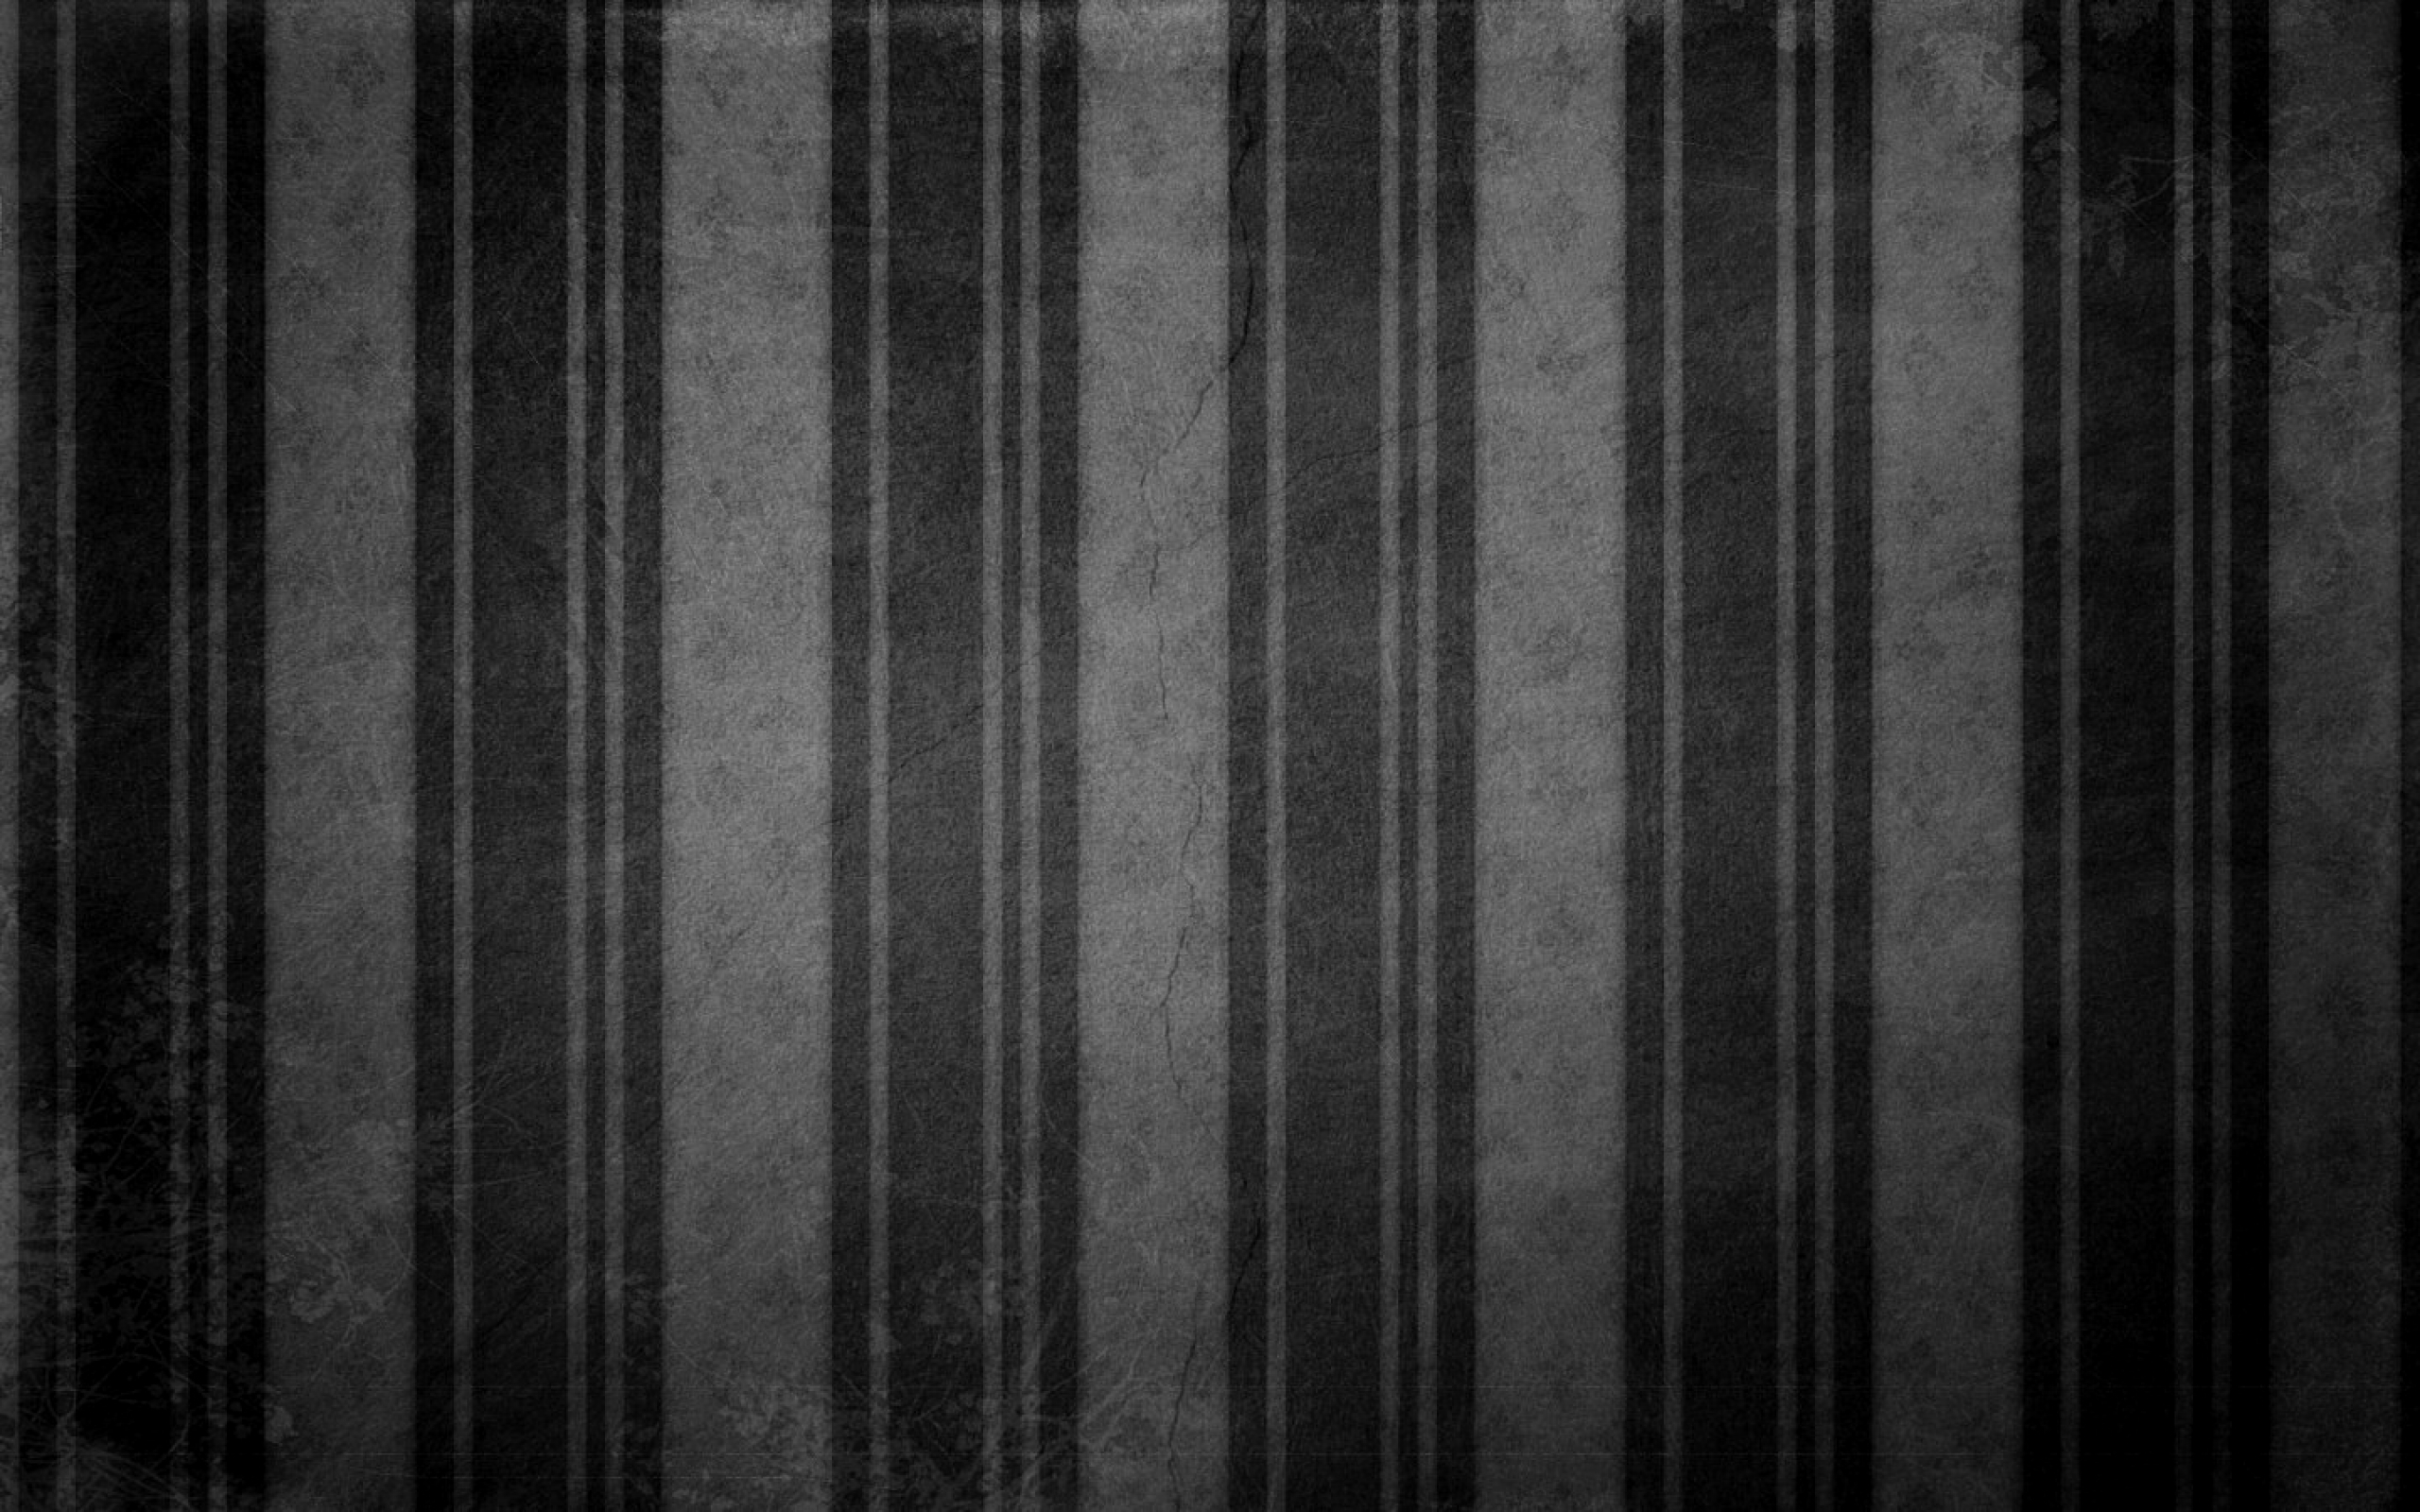 Stripe Full Hd Wallpaper And Background Image 2560x1600